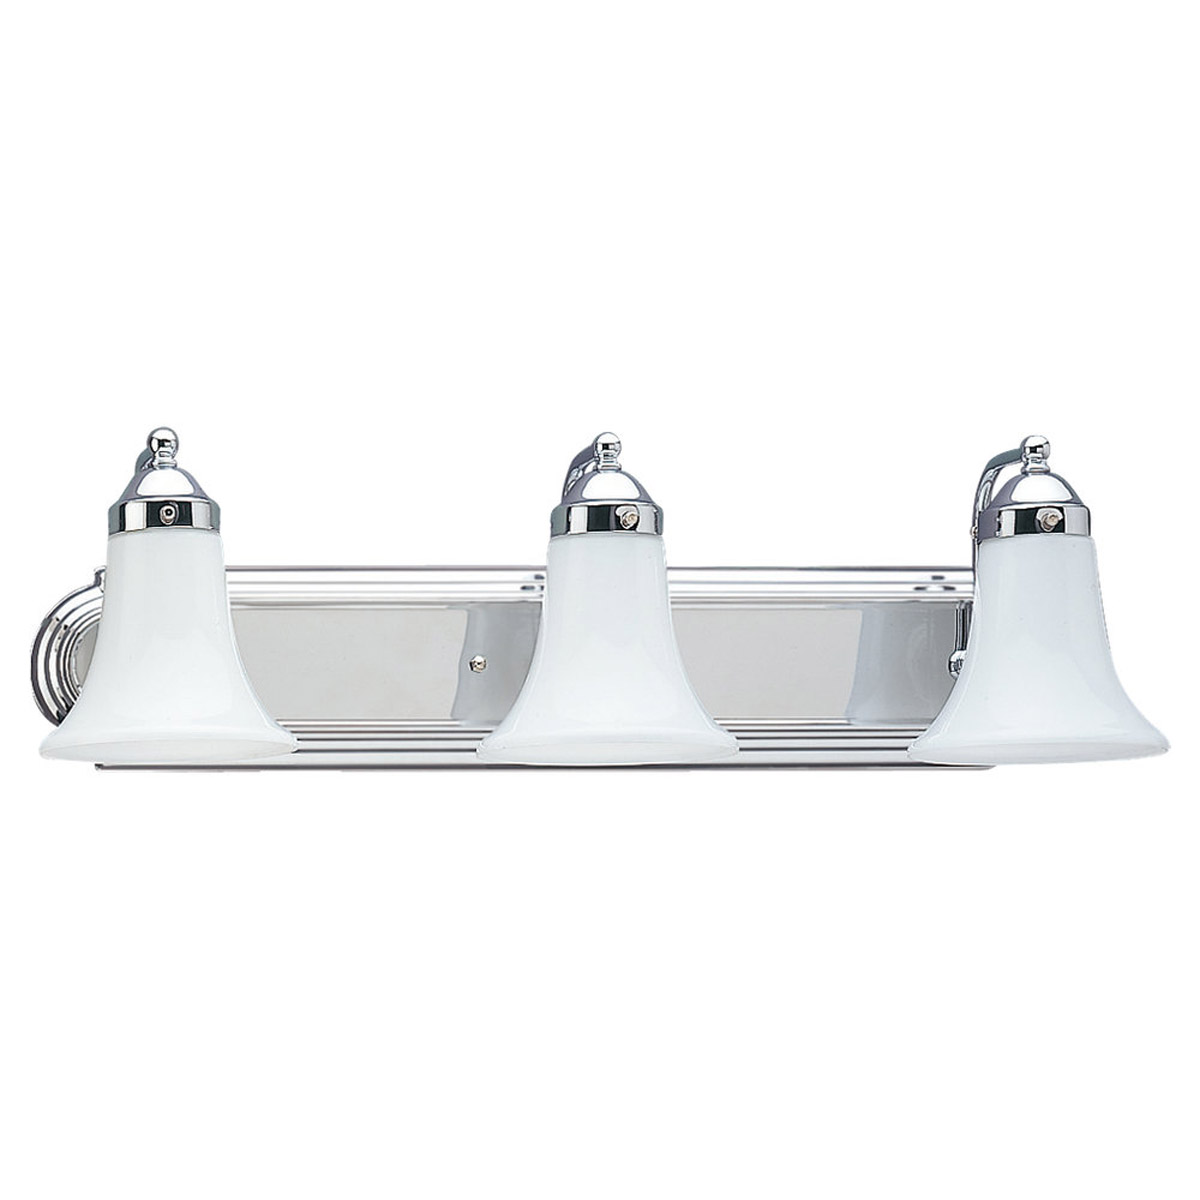 Sea Gull Lighting Astoria 3 Light Bath Vanity in Chrome 4859-05